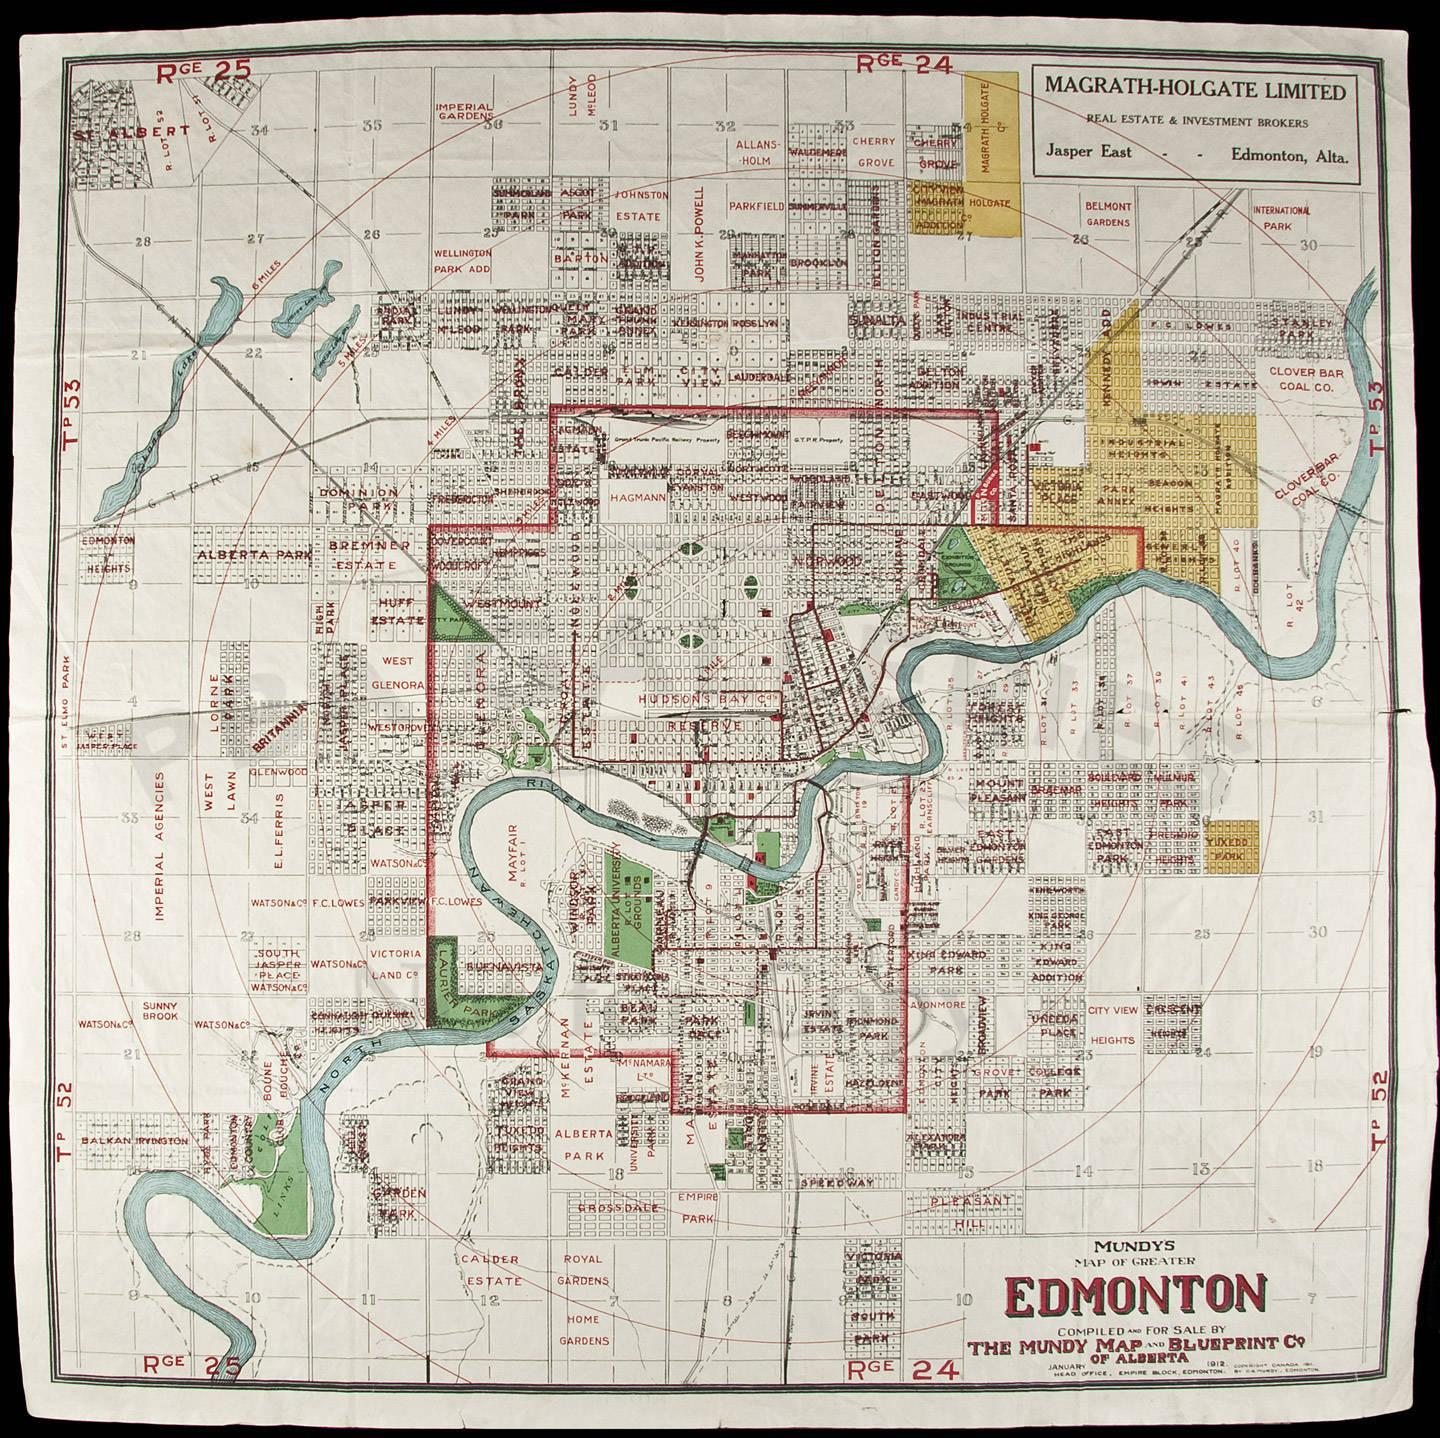 Mundys map of greater edmonton compiled and for sale by the mundys map of greater edmonton compiled and for sale by the mundy map and blueprint co of alberta price estimate 300 500 malvernweather Image collections